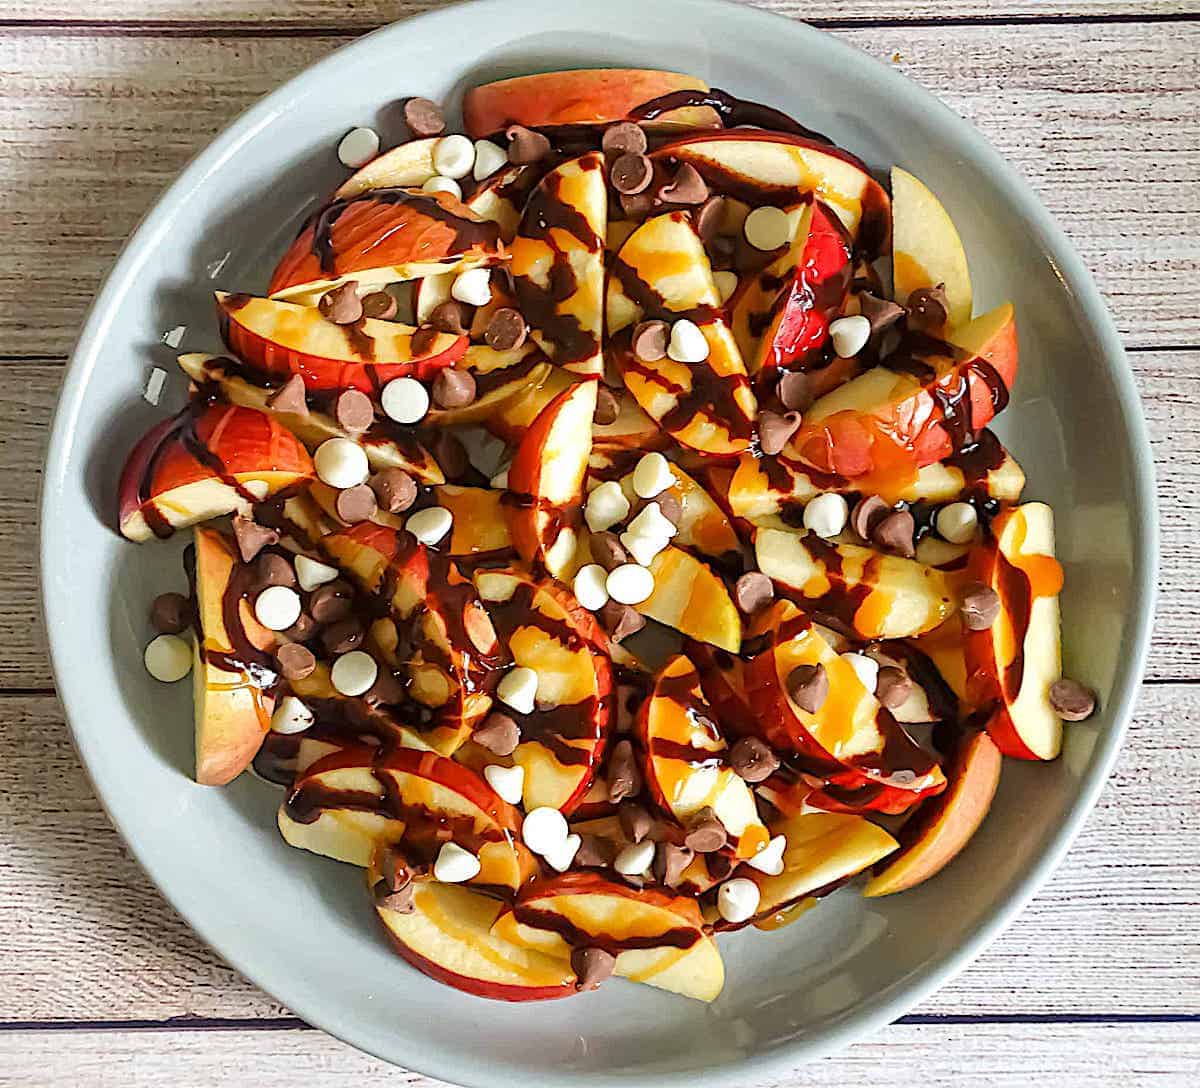 apple nachos with caramel, chocolate sauce and chocolate chips as an after school snack idea